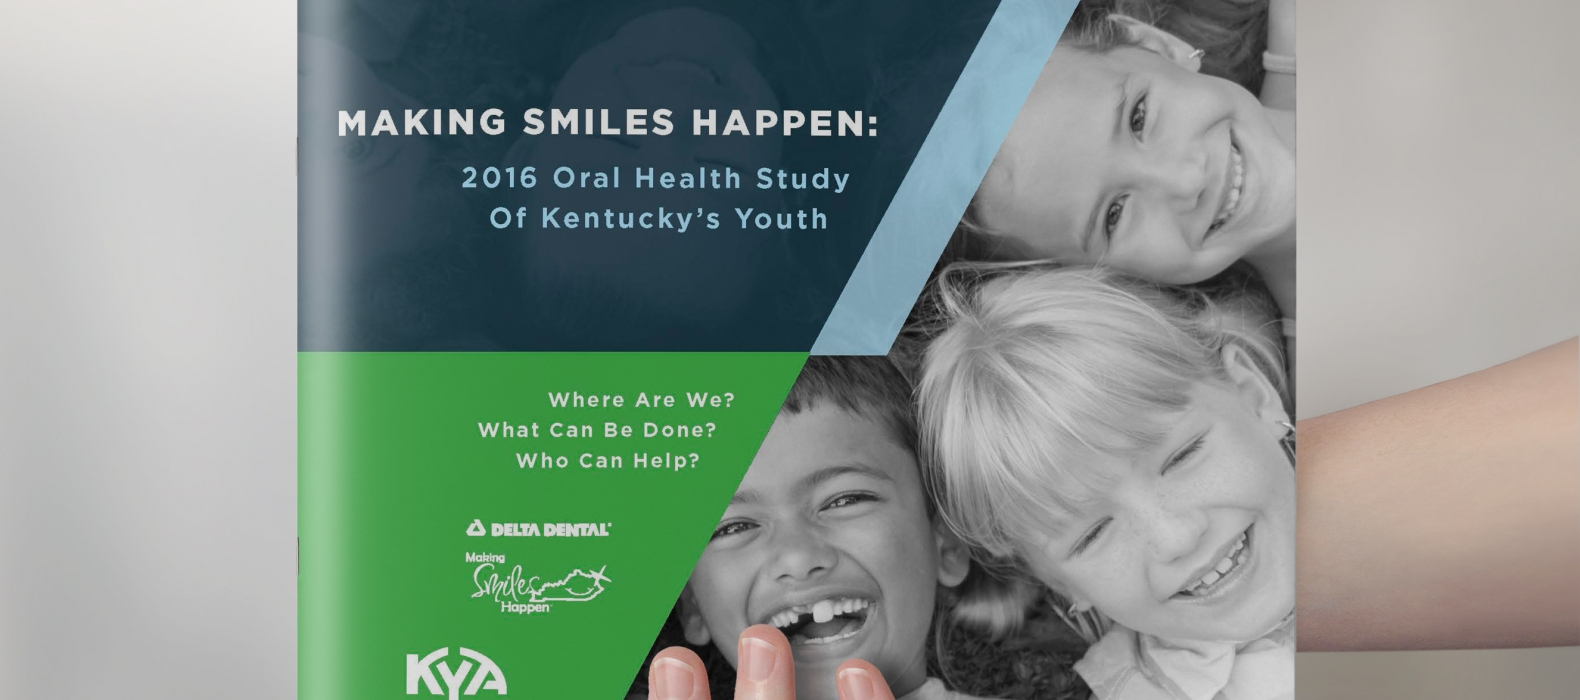 Statewide Data on the Oral Health of Kentucky's Youth